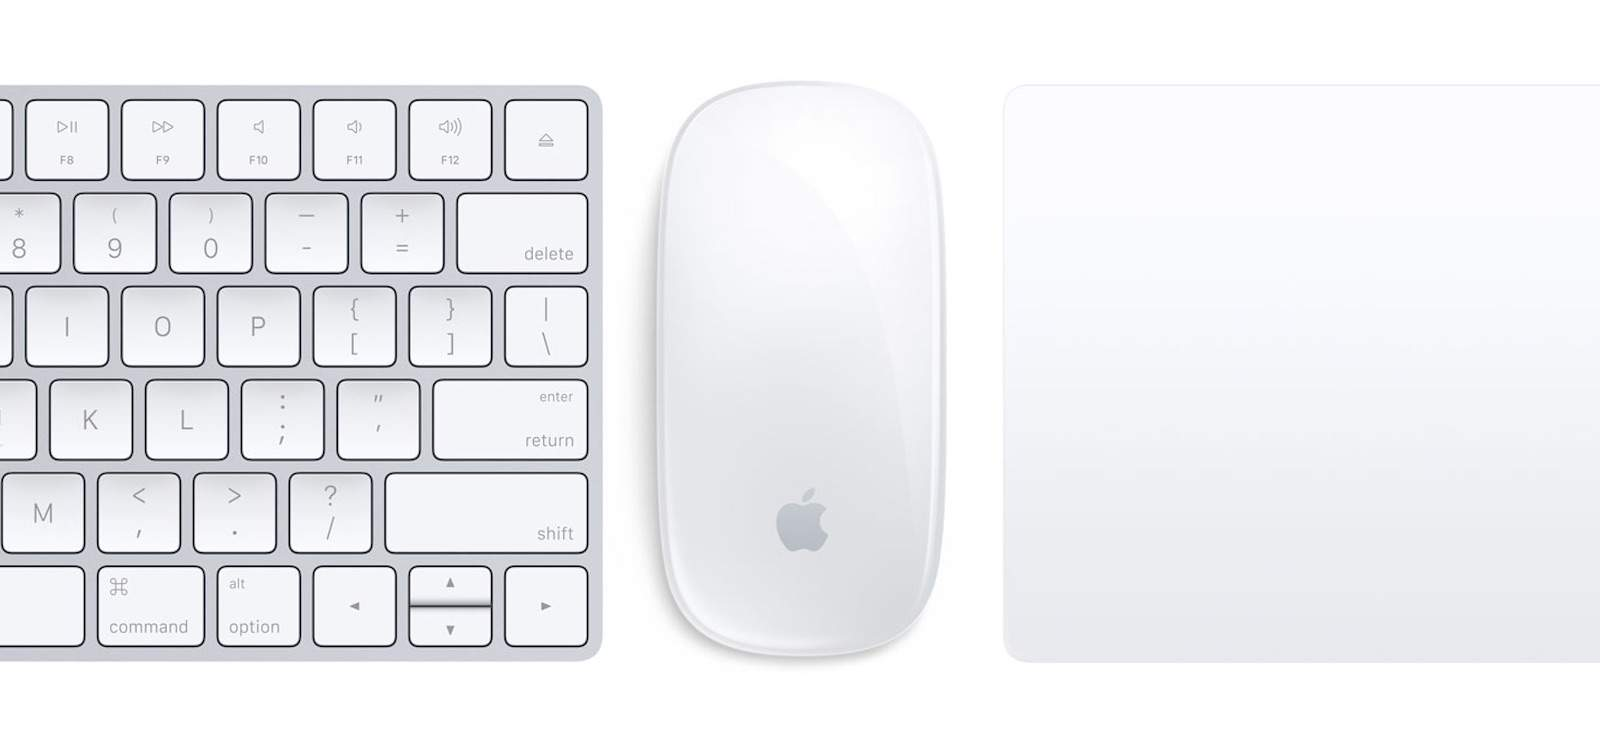 Apple has some Magical new peripherals.